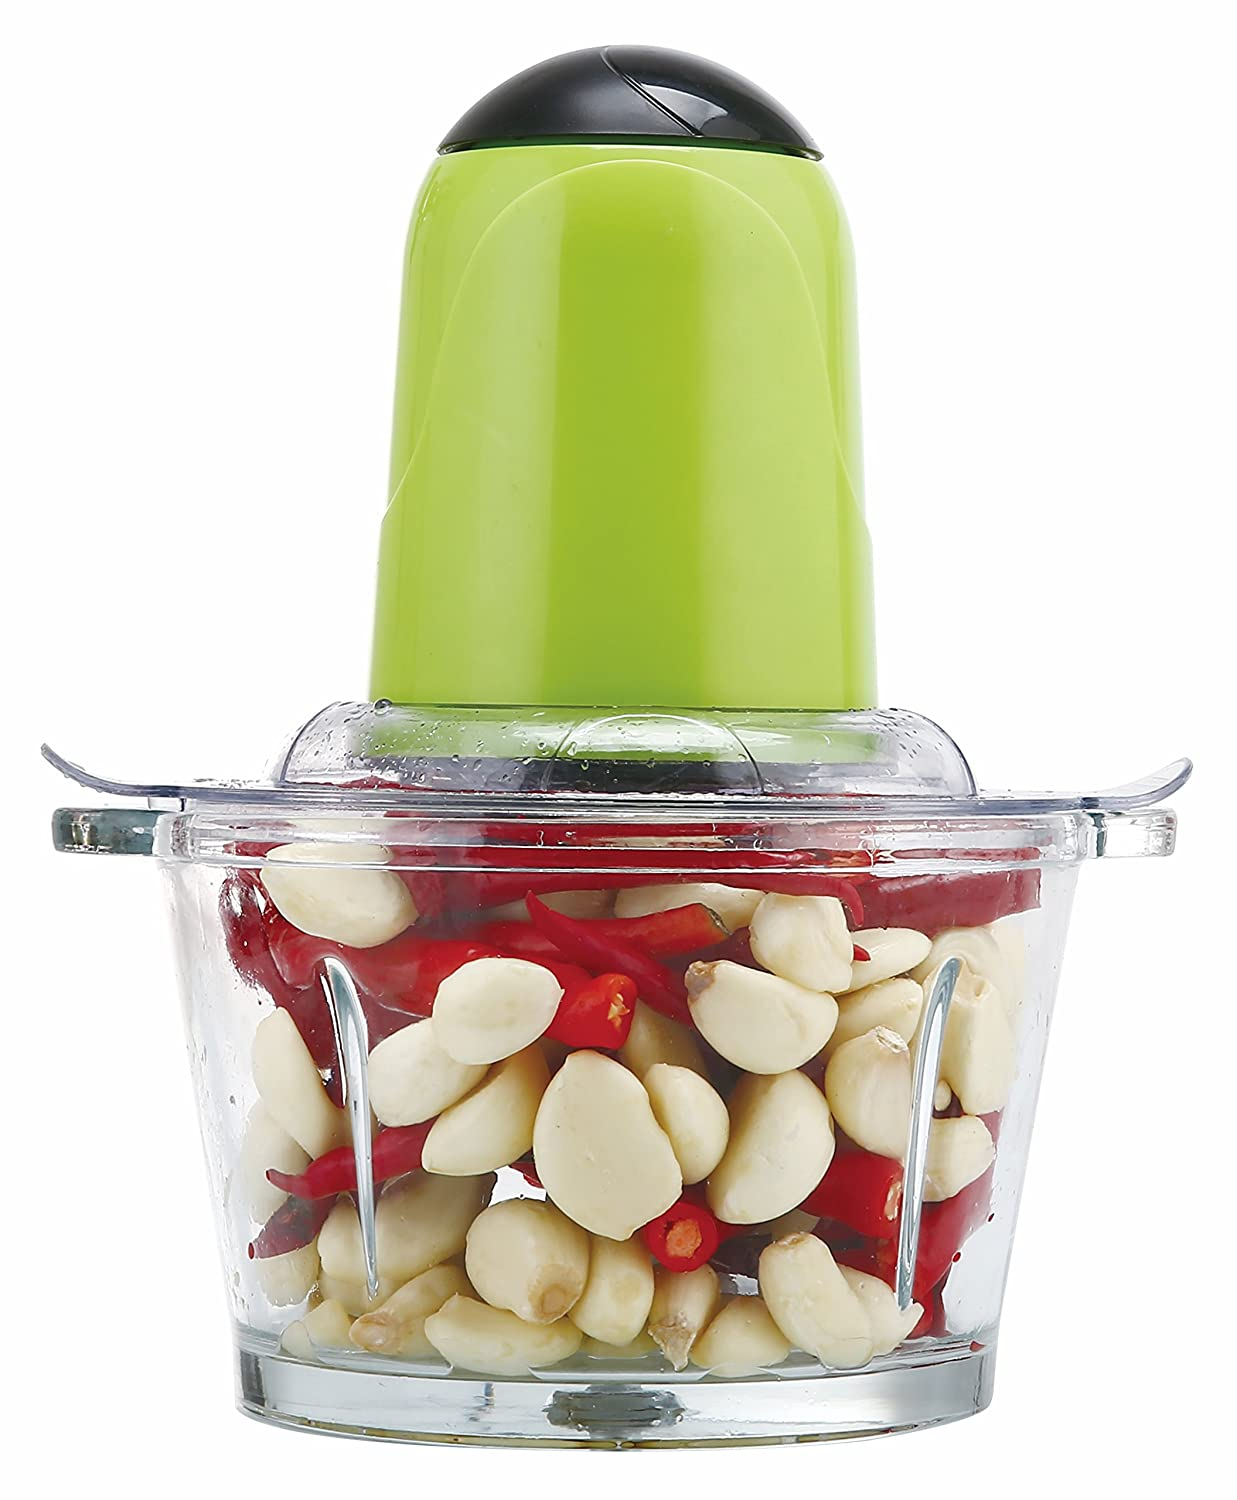 RADLEY Food Chopper, Blender, Food Processor, Shred food, 6 Cup (GREEN)